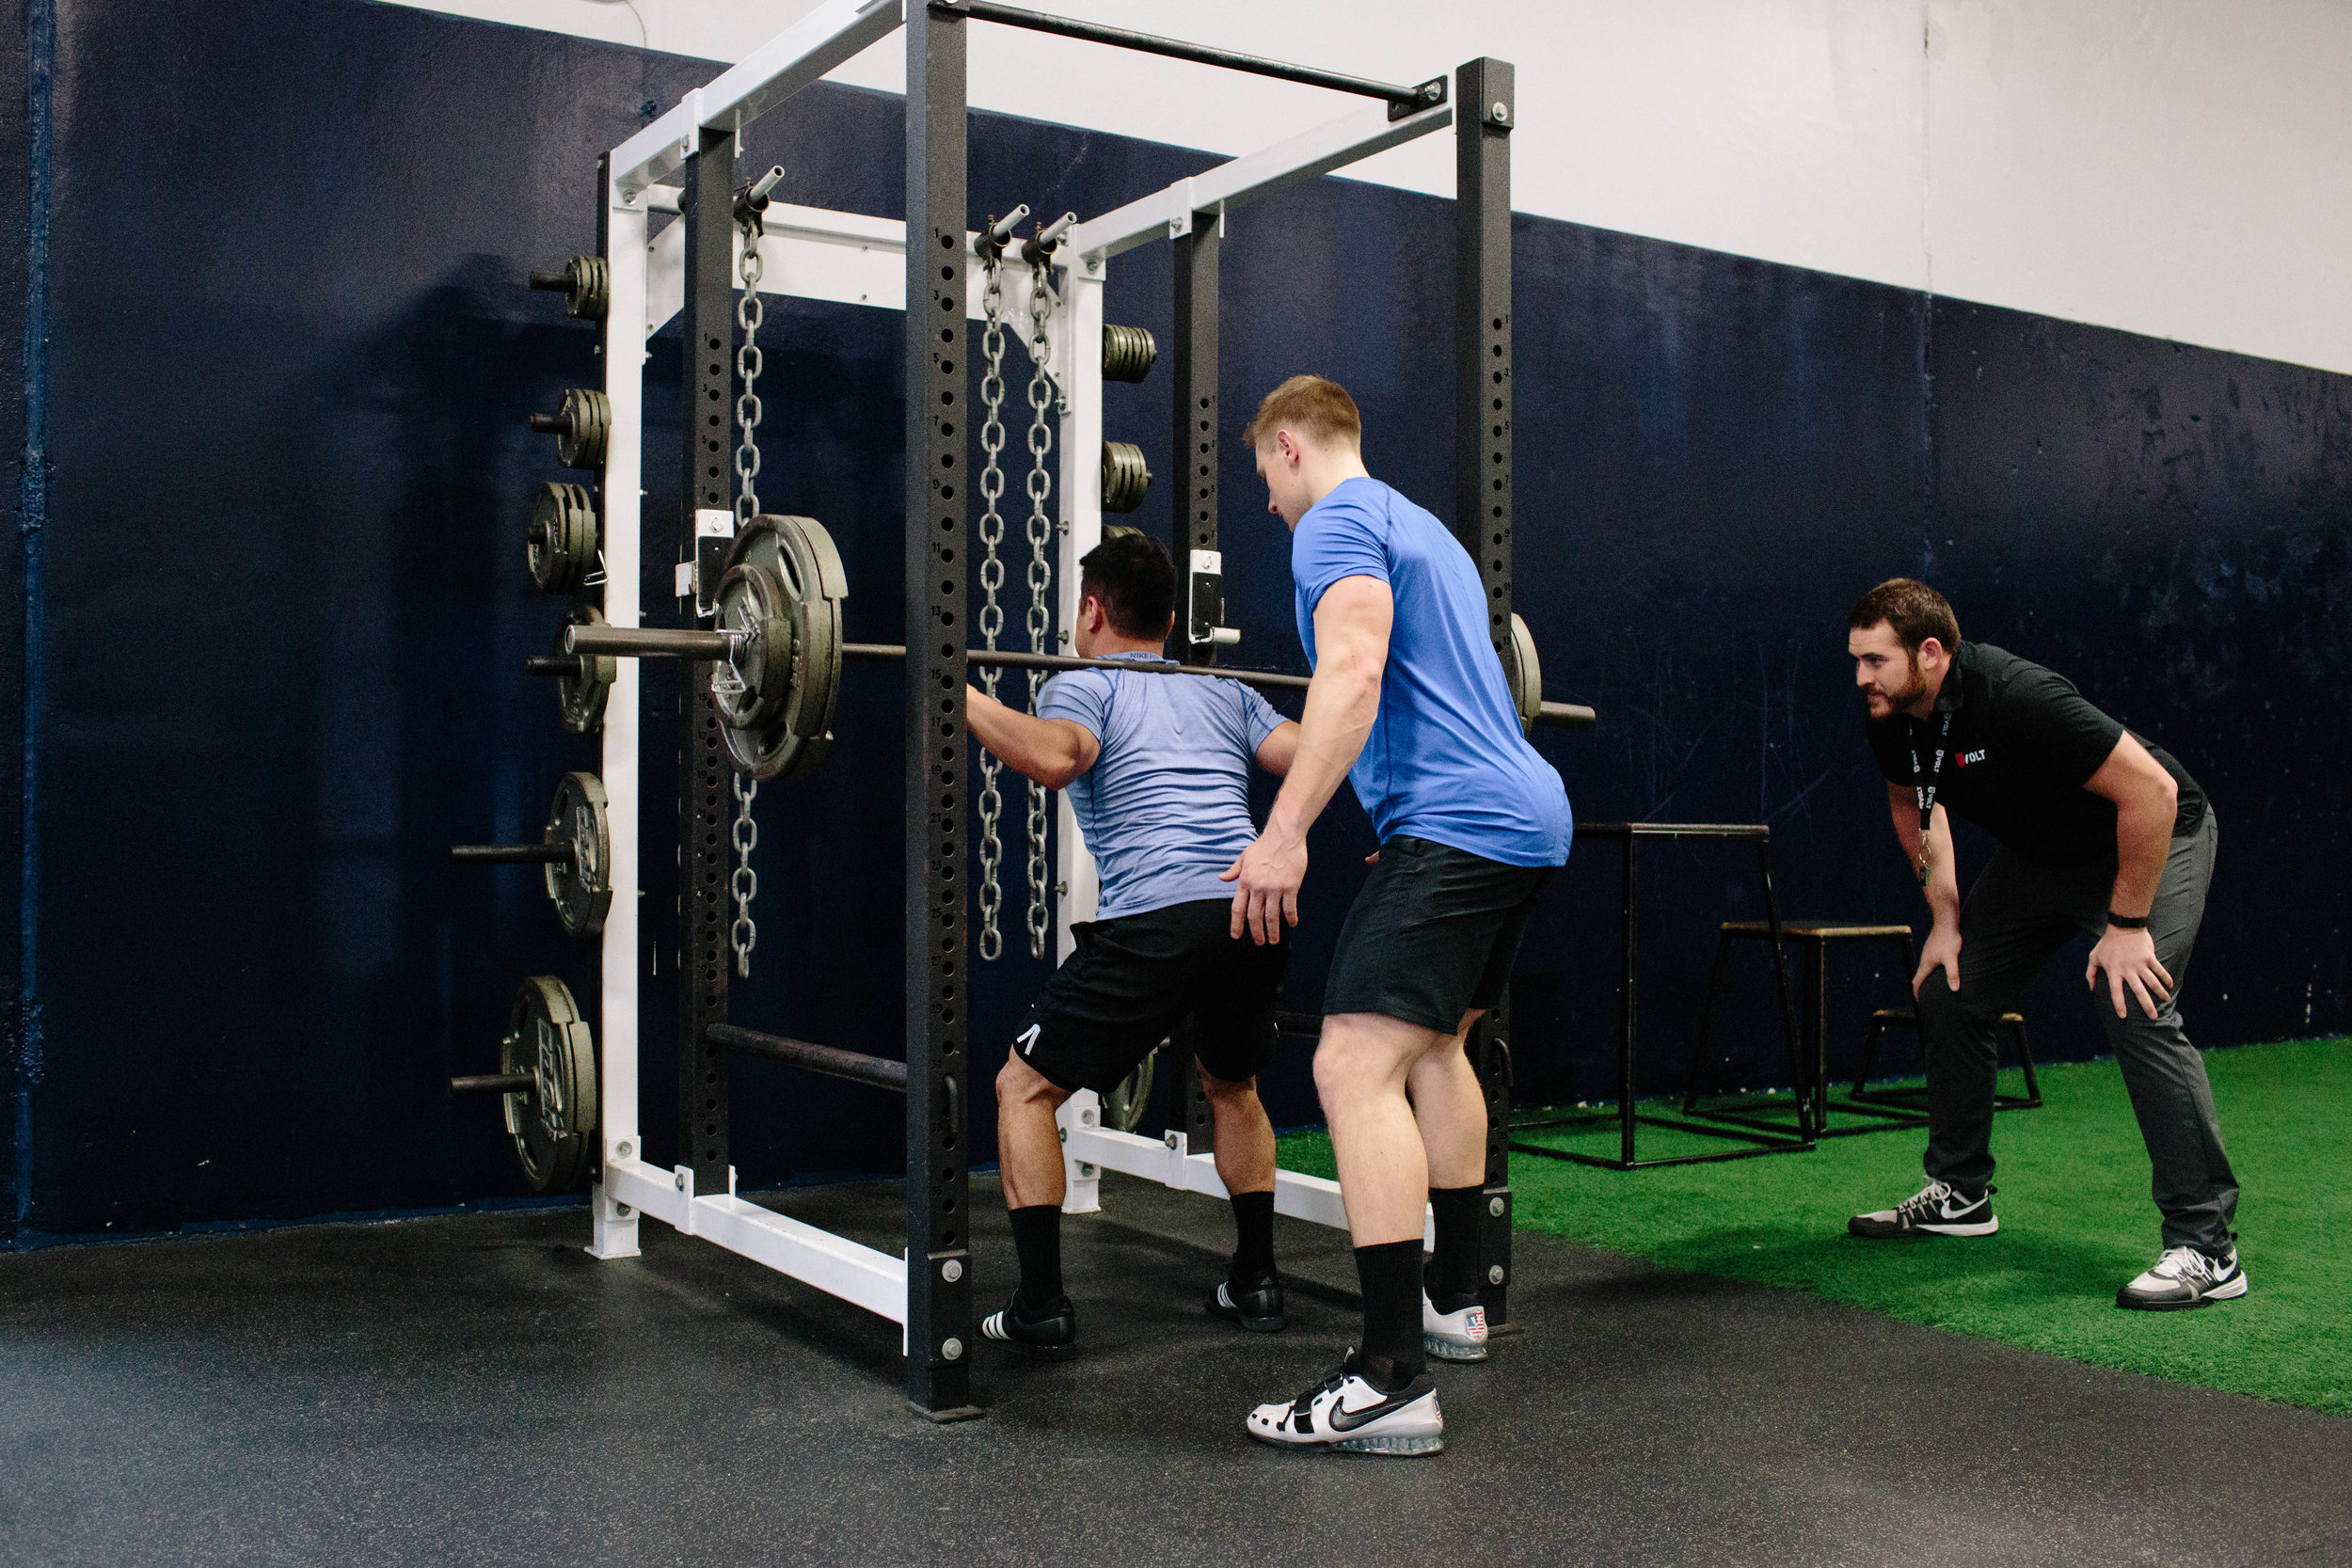 When spotting the squat, the spotter should stand directly behind the athlete and track the movement of the bar with both hands, ready to assist by touching only the weight, if necessary.